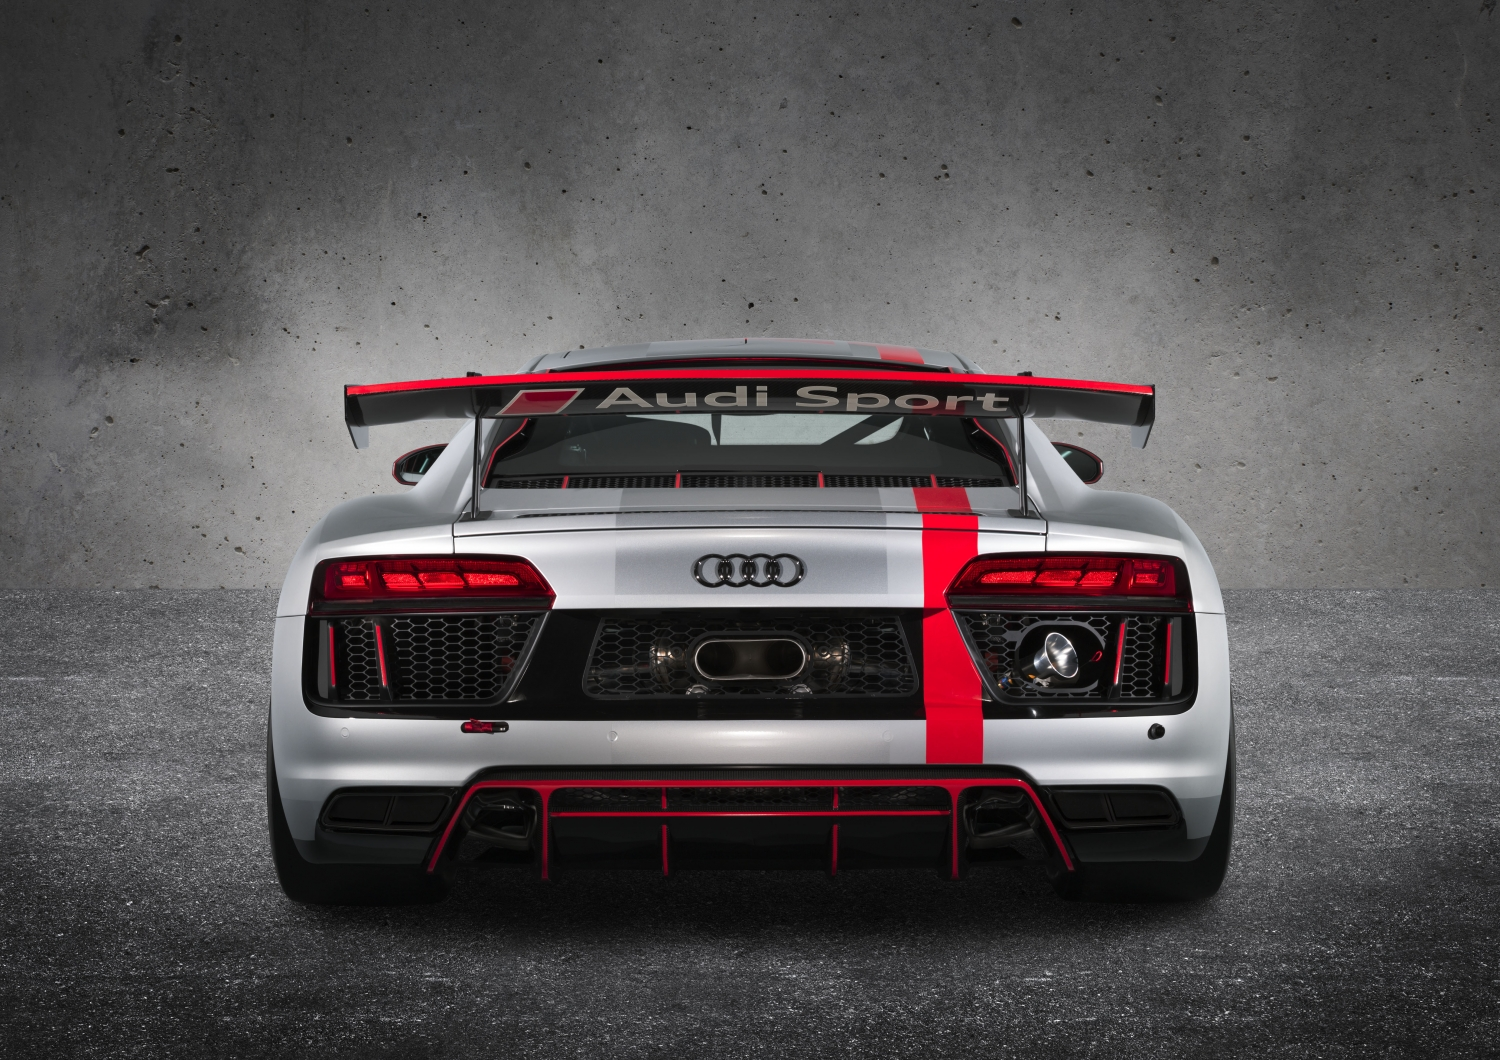 New Audi R LMS GT Audi Sport Customer Racing Headed For Growth - Audi a series models